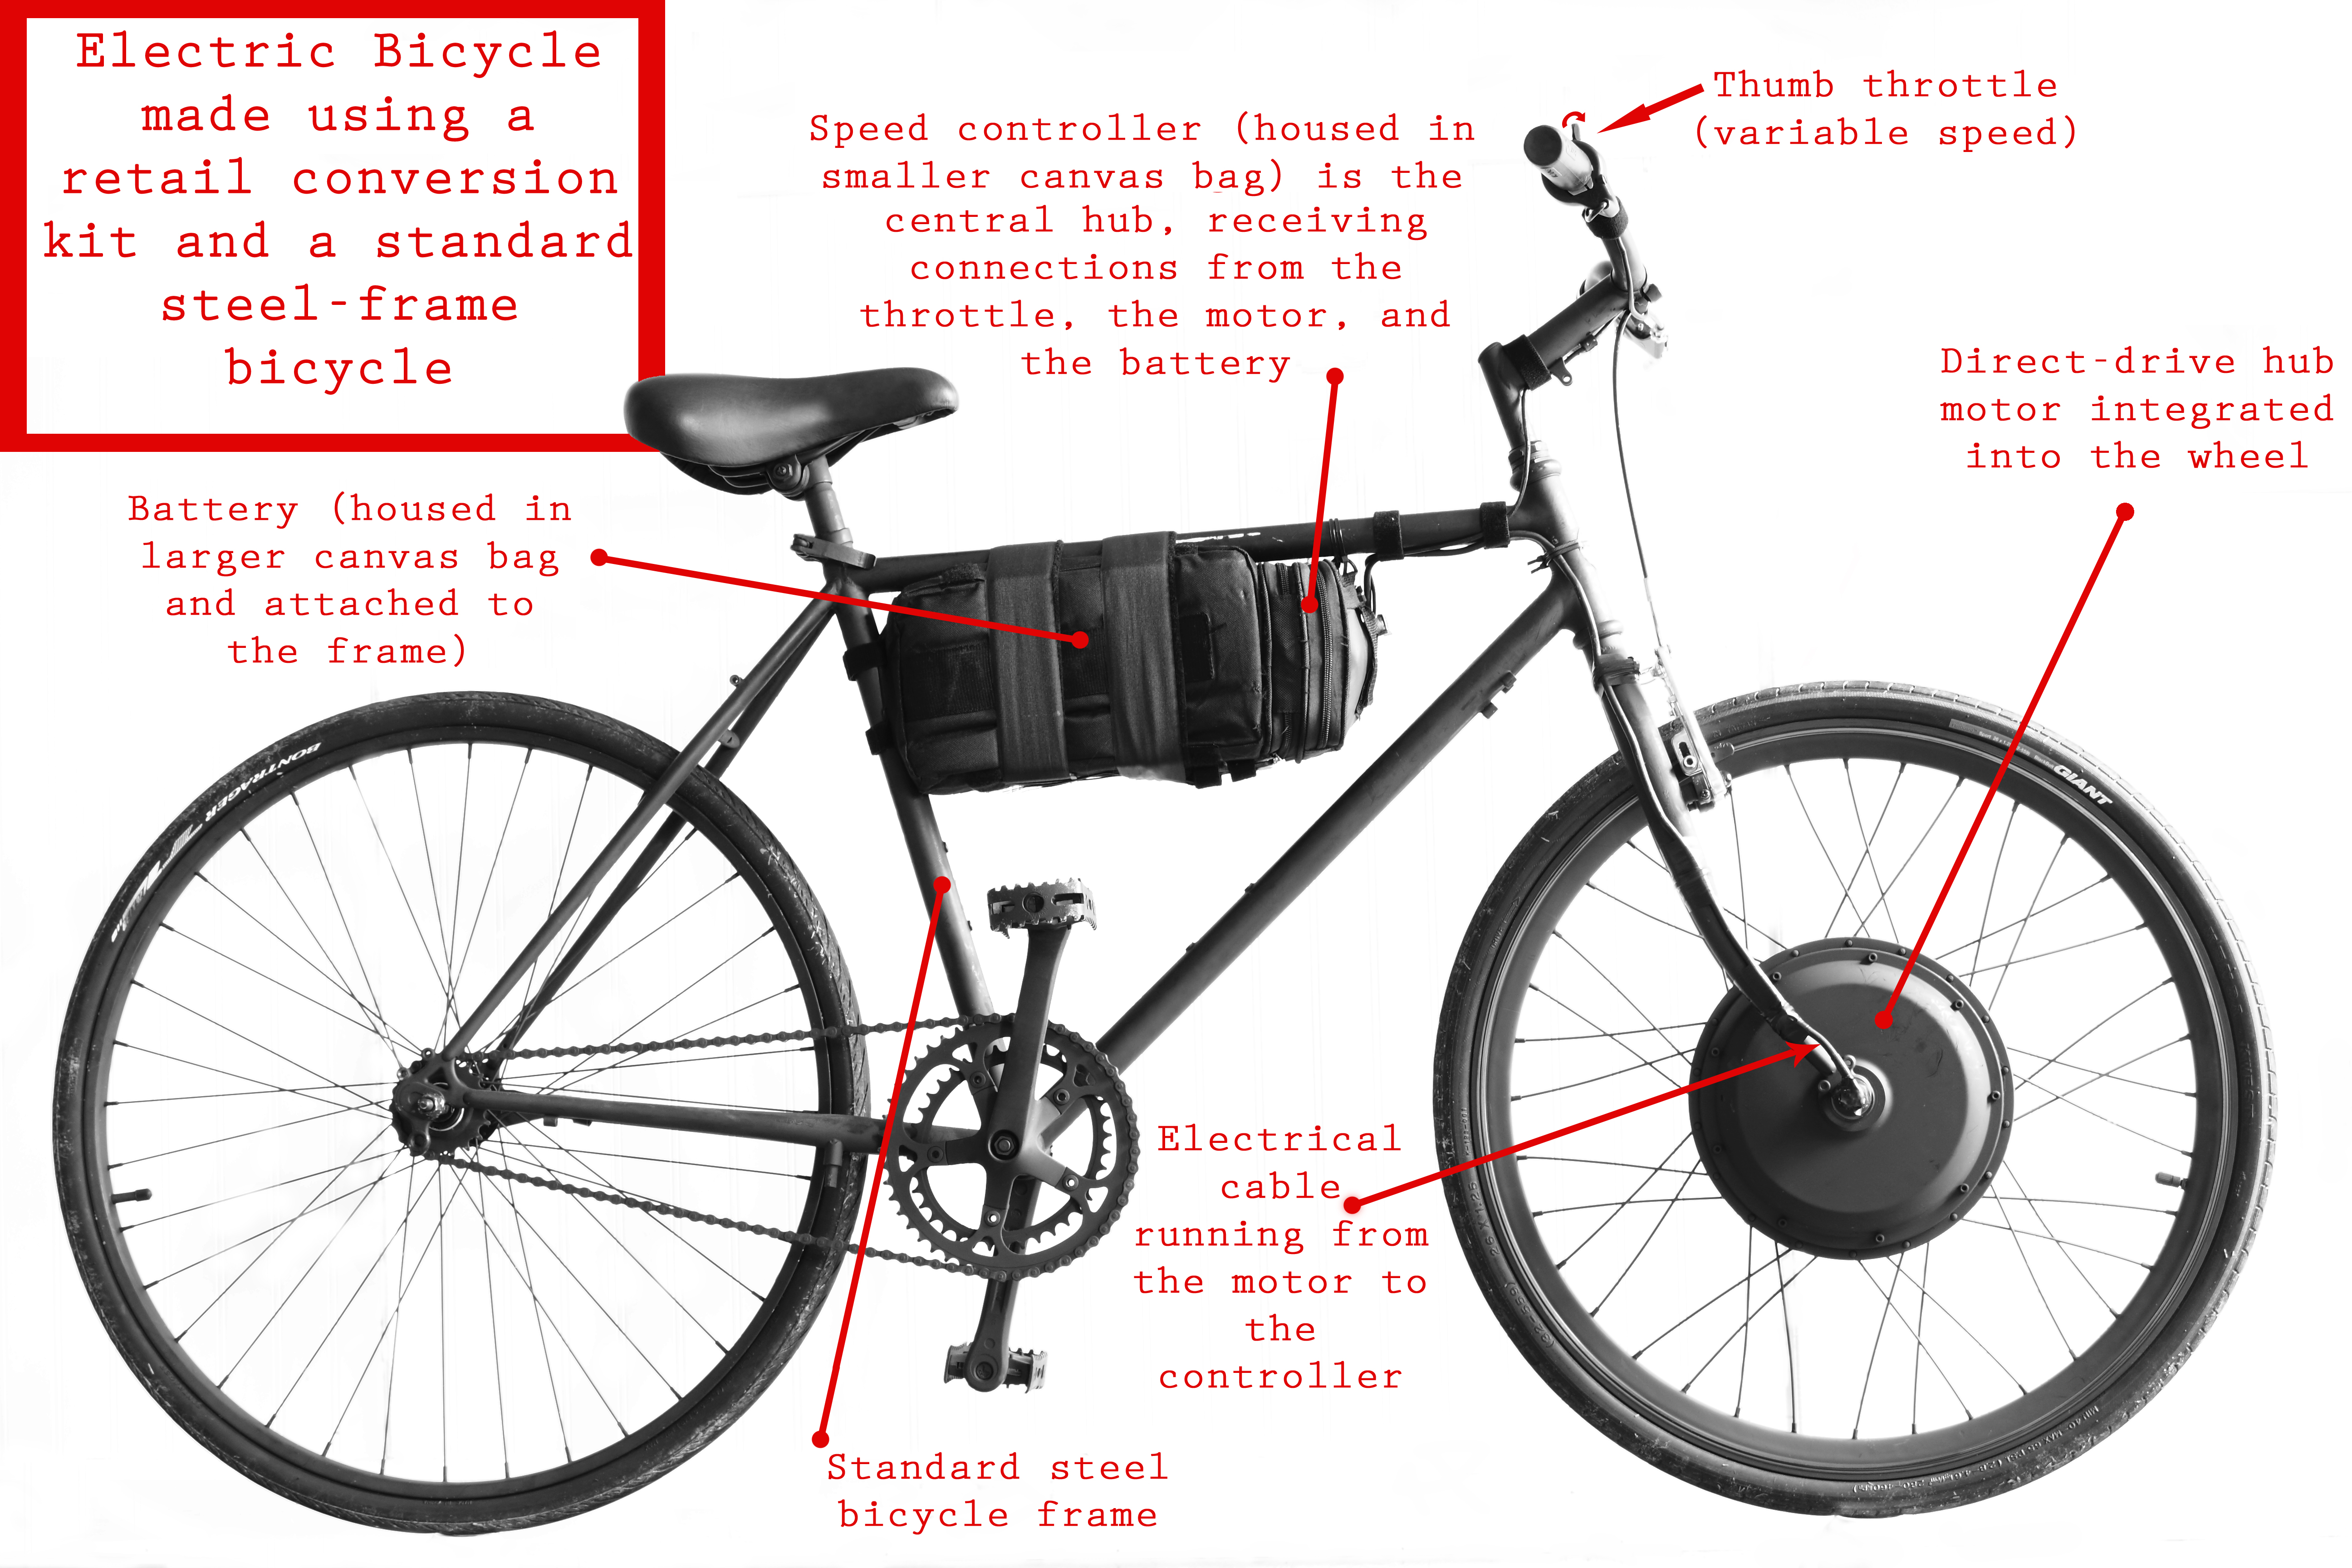 file electric bicycle diagram jpg wikimedia commons rh commons wikimedia org Bicycle Frame Diagram Bicycle Diagram Labeled